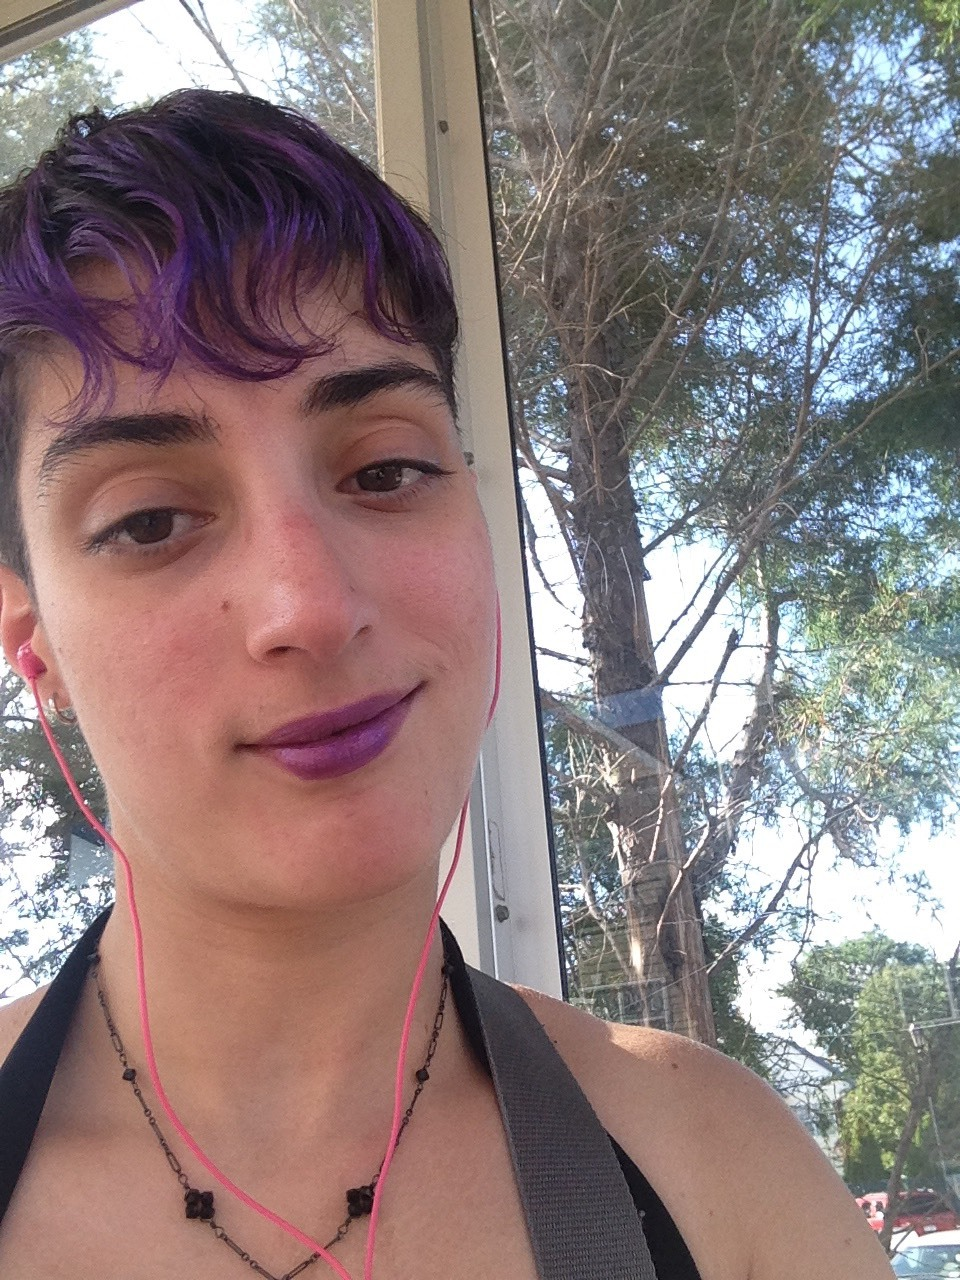 A Caucasian femme with shaved brown hair, purple bangs and lipstick, and brown eyes smiling with her head tilted against a backdrop of trees.